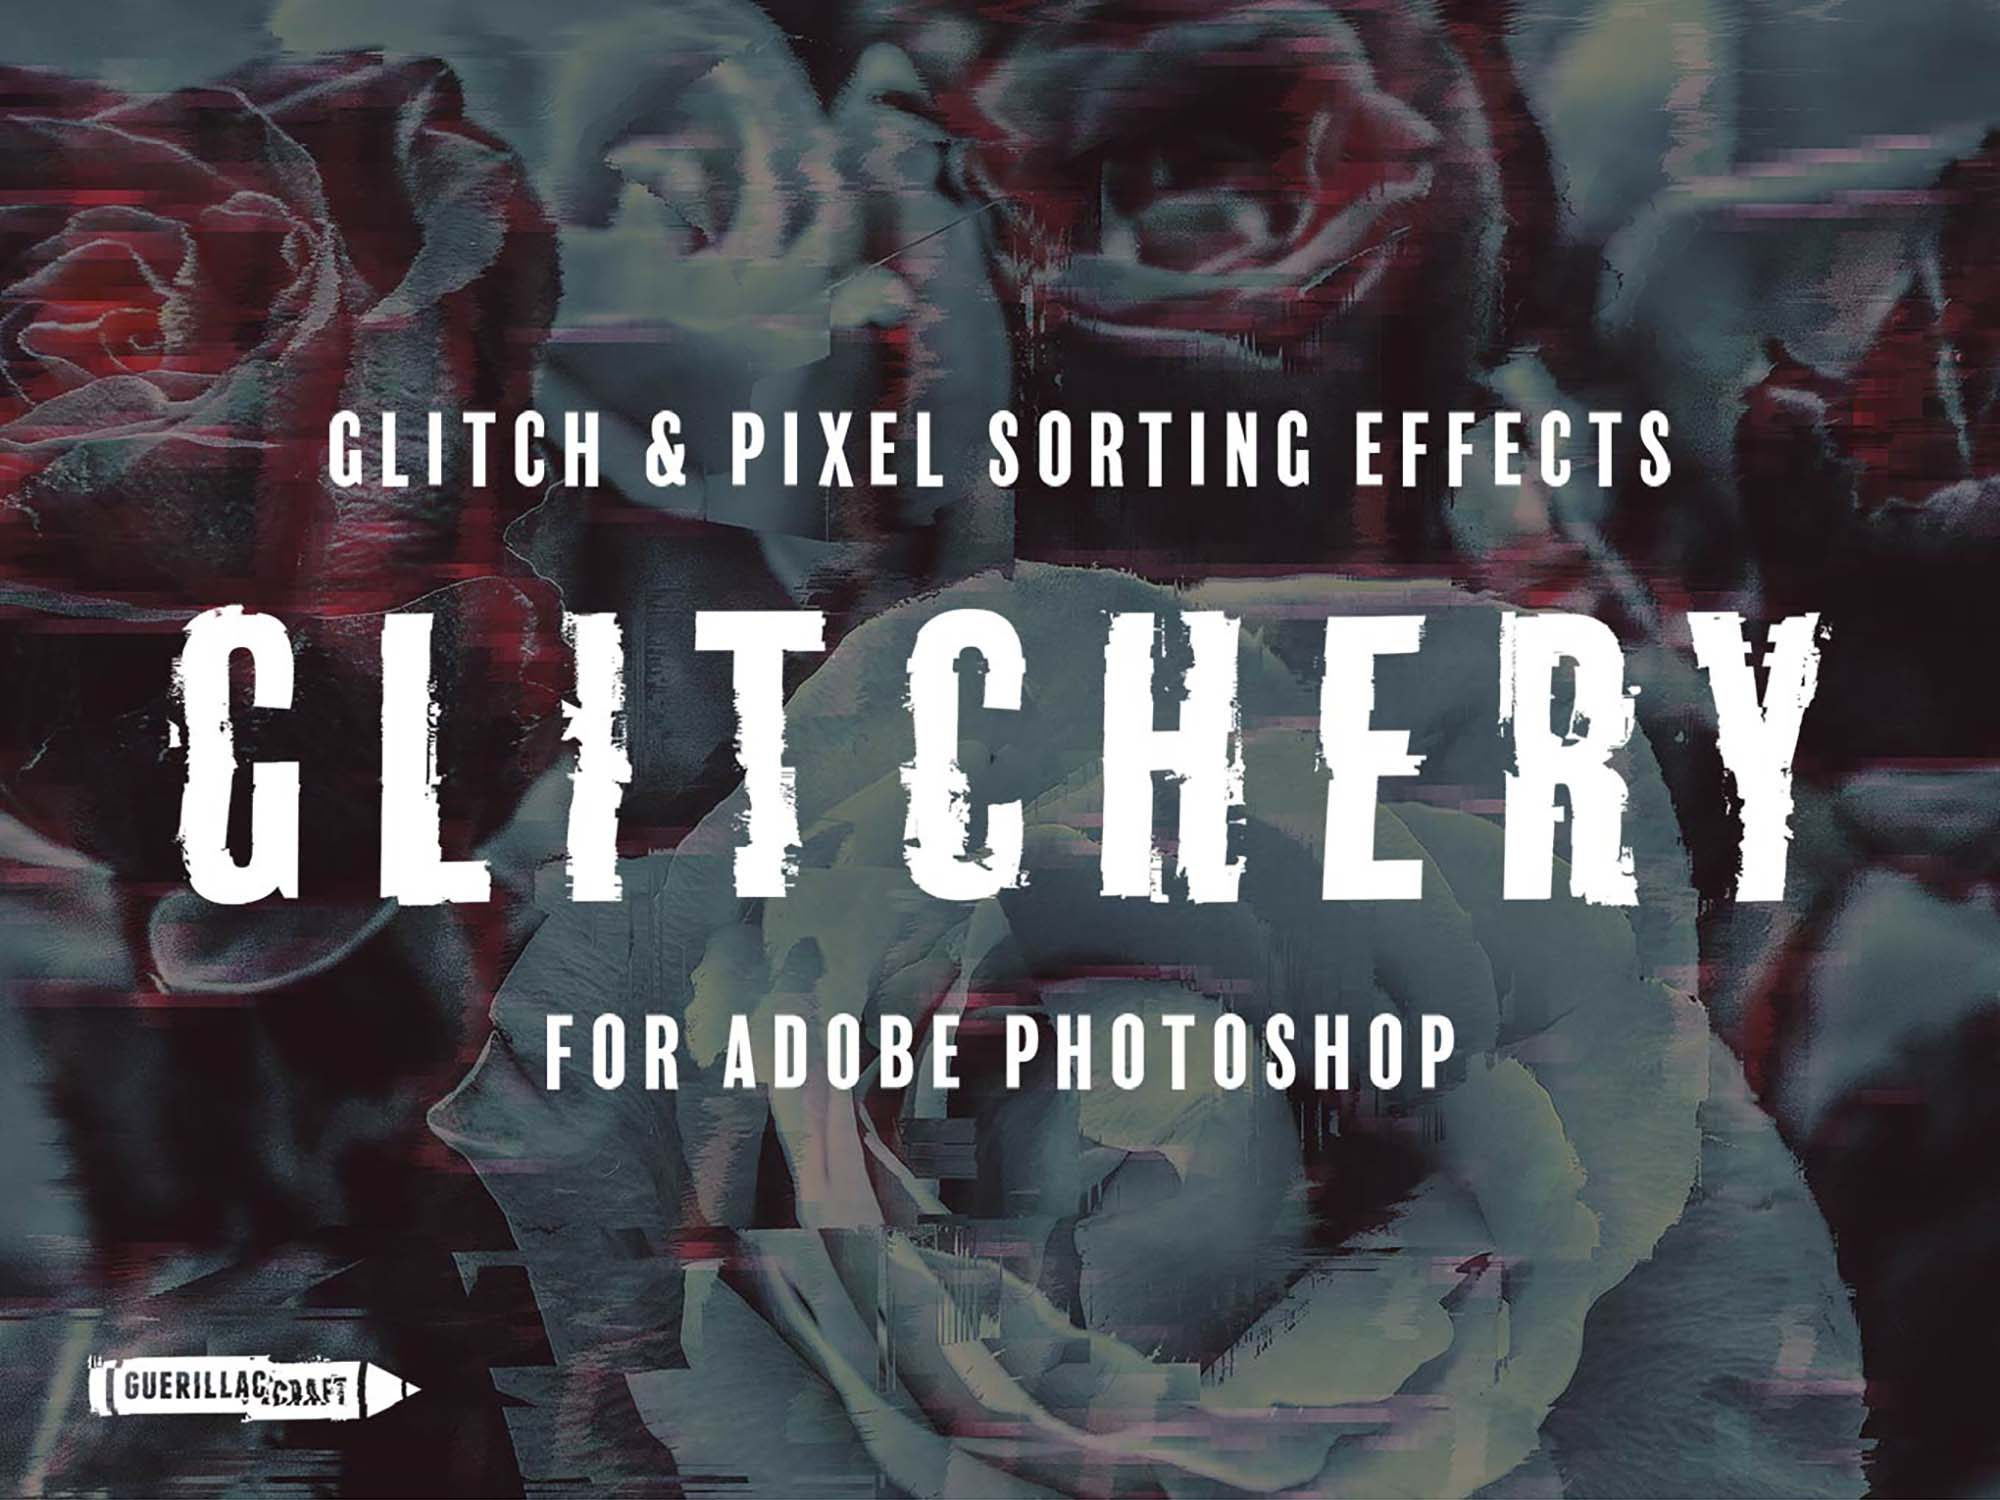 Glitchy Photoshop Effect